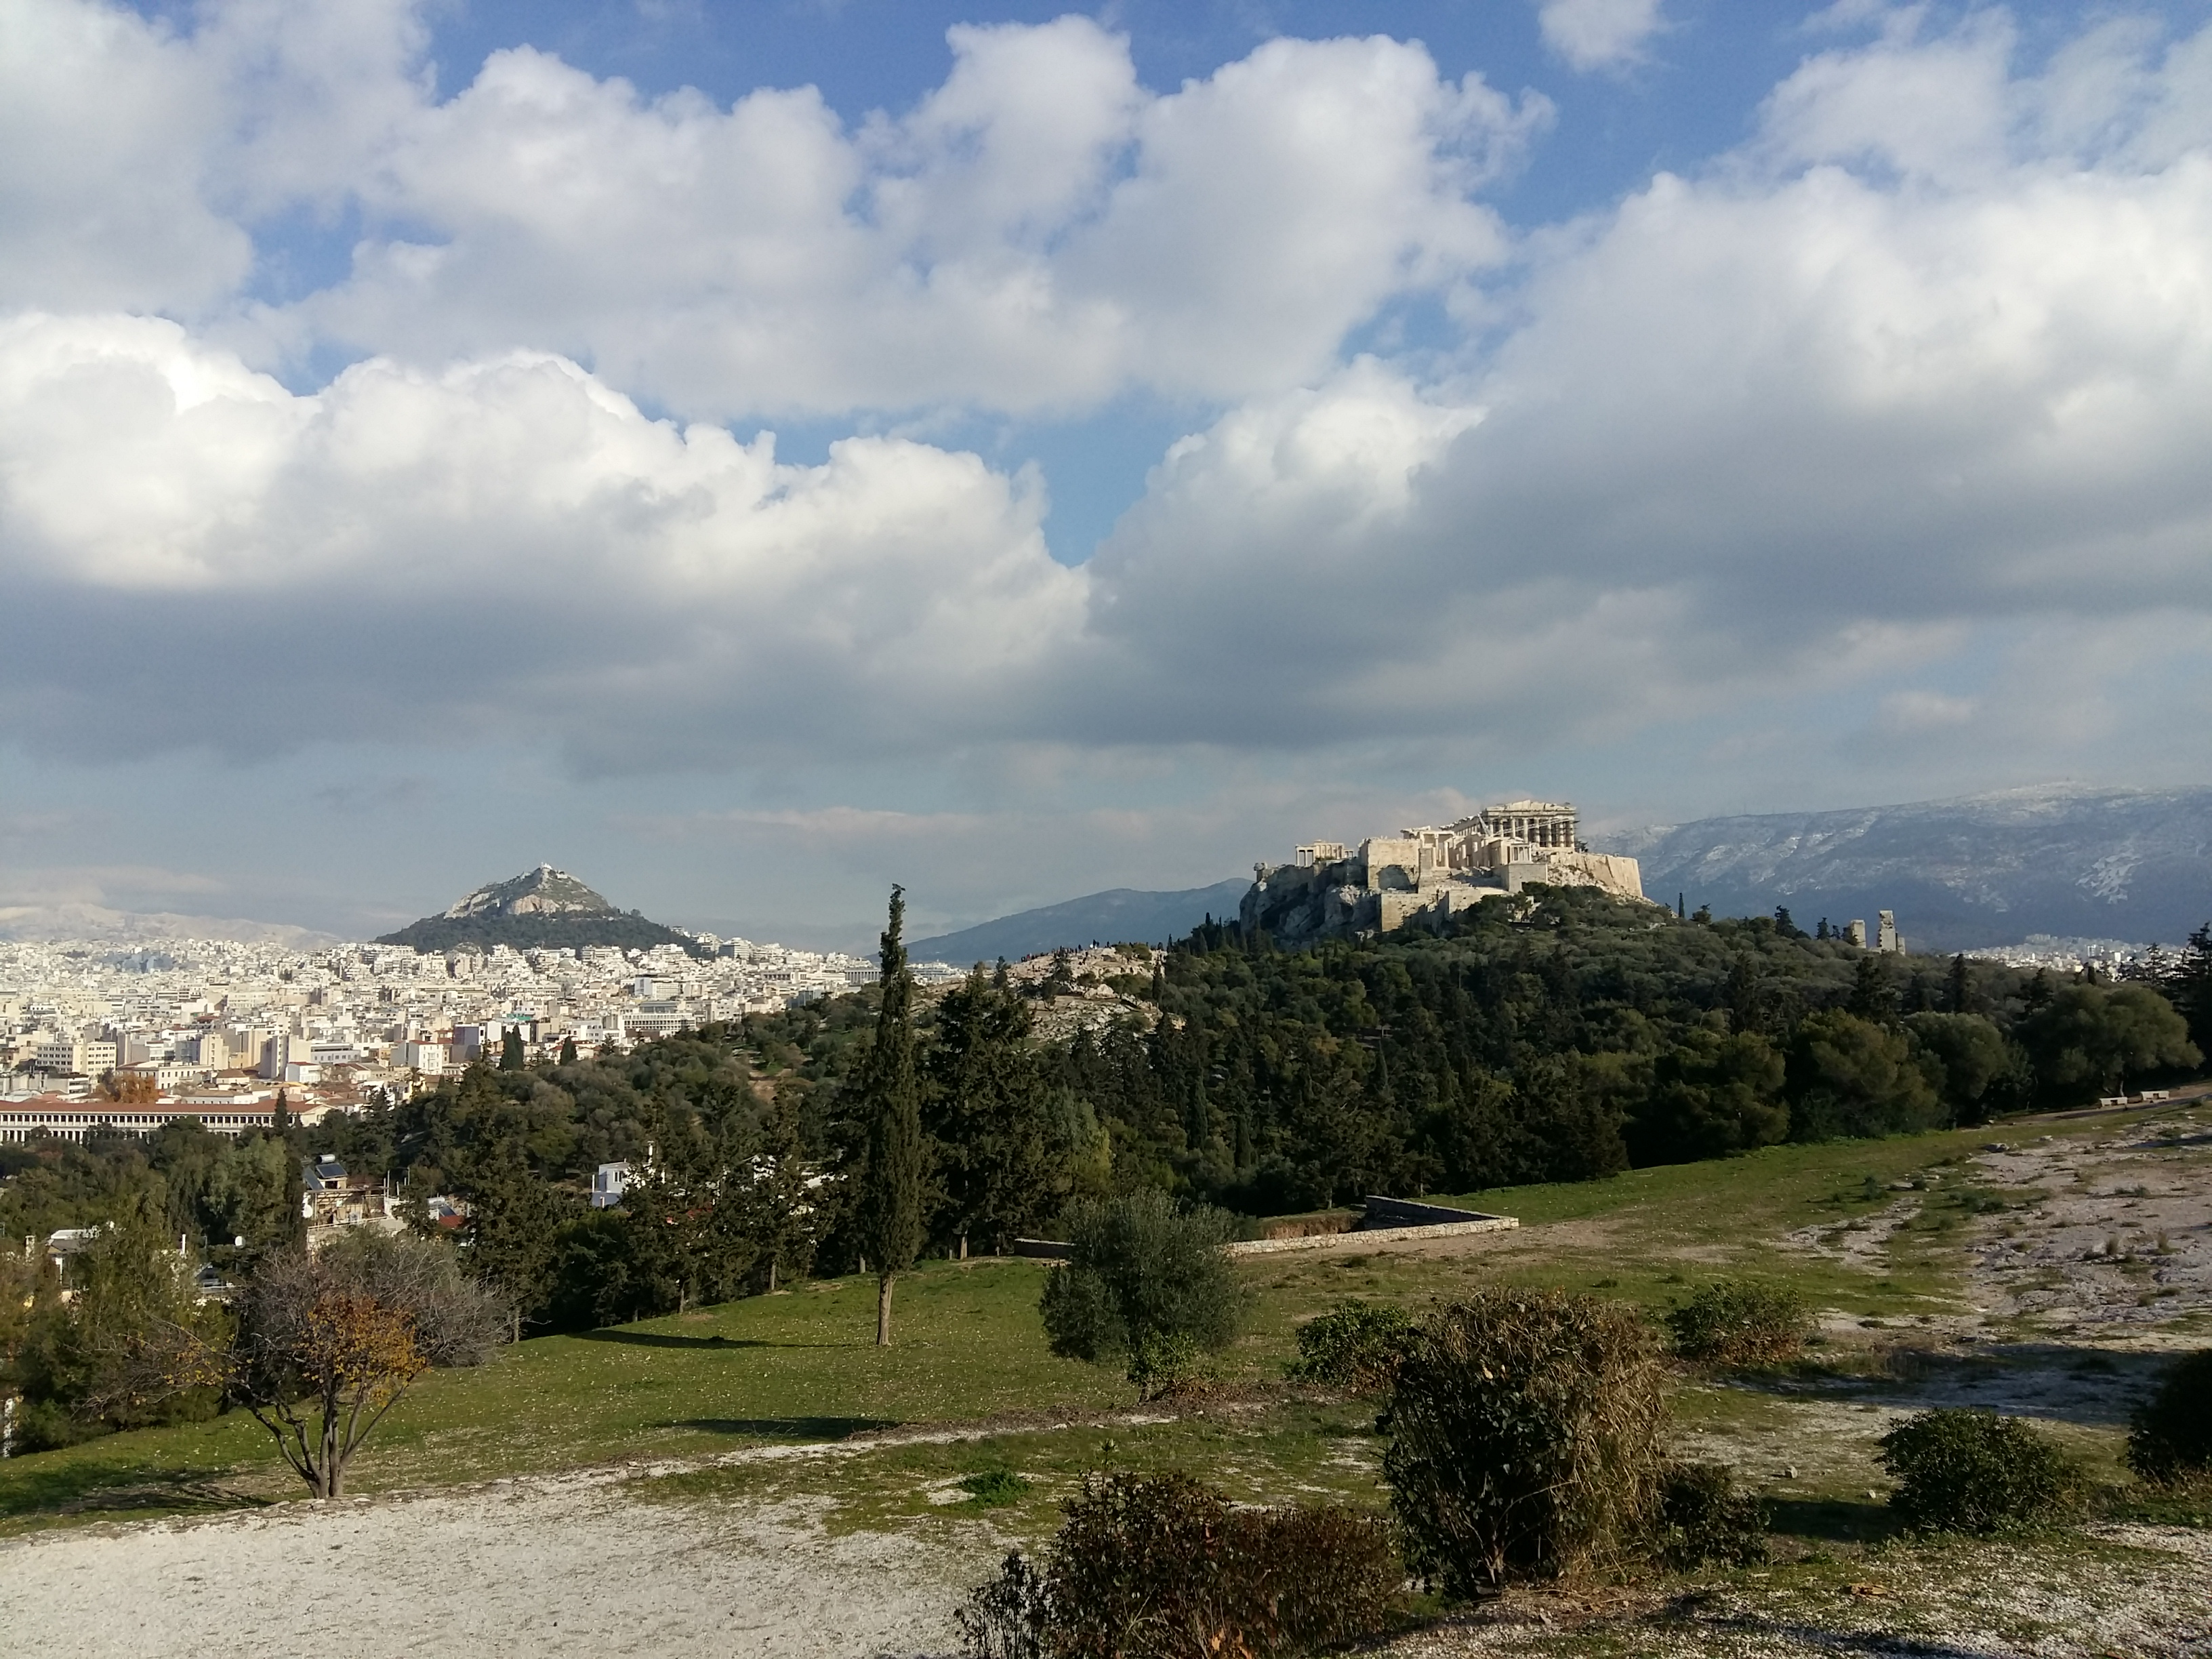 Free things to do in Athens - Walk around the ancient sites